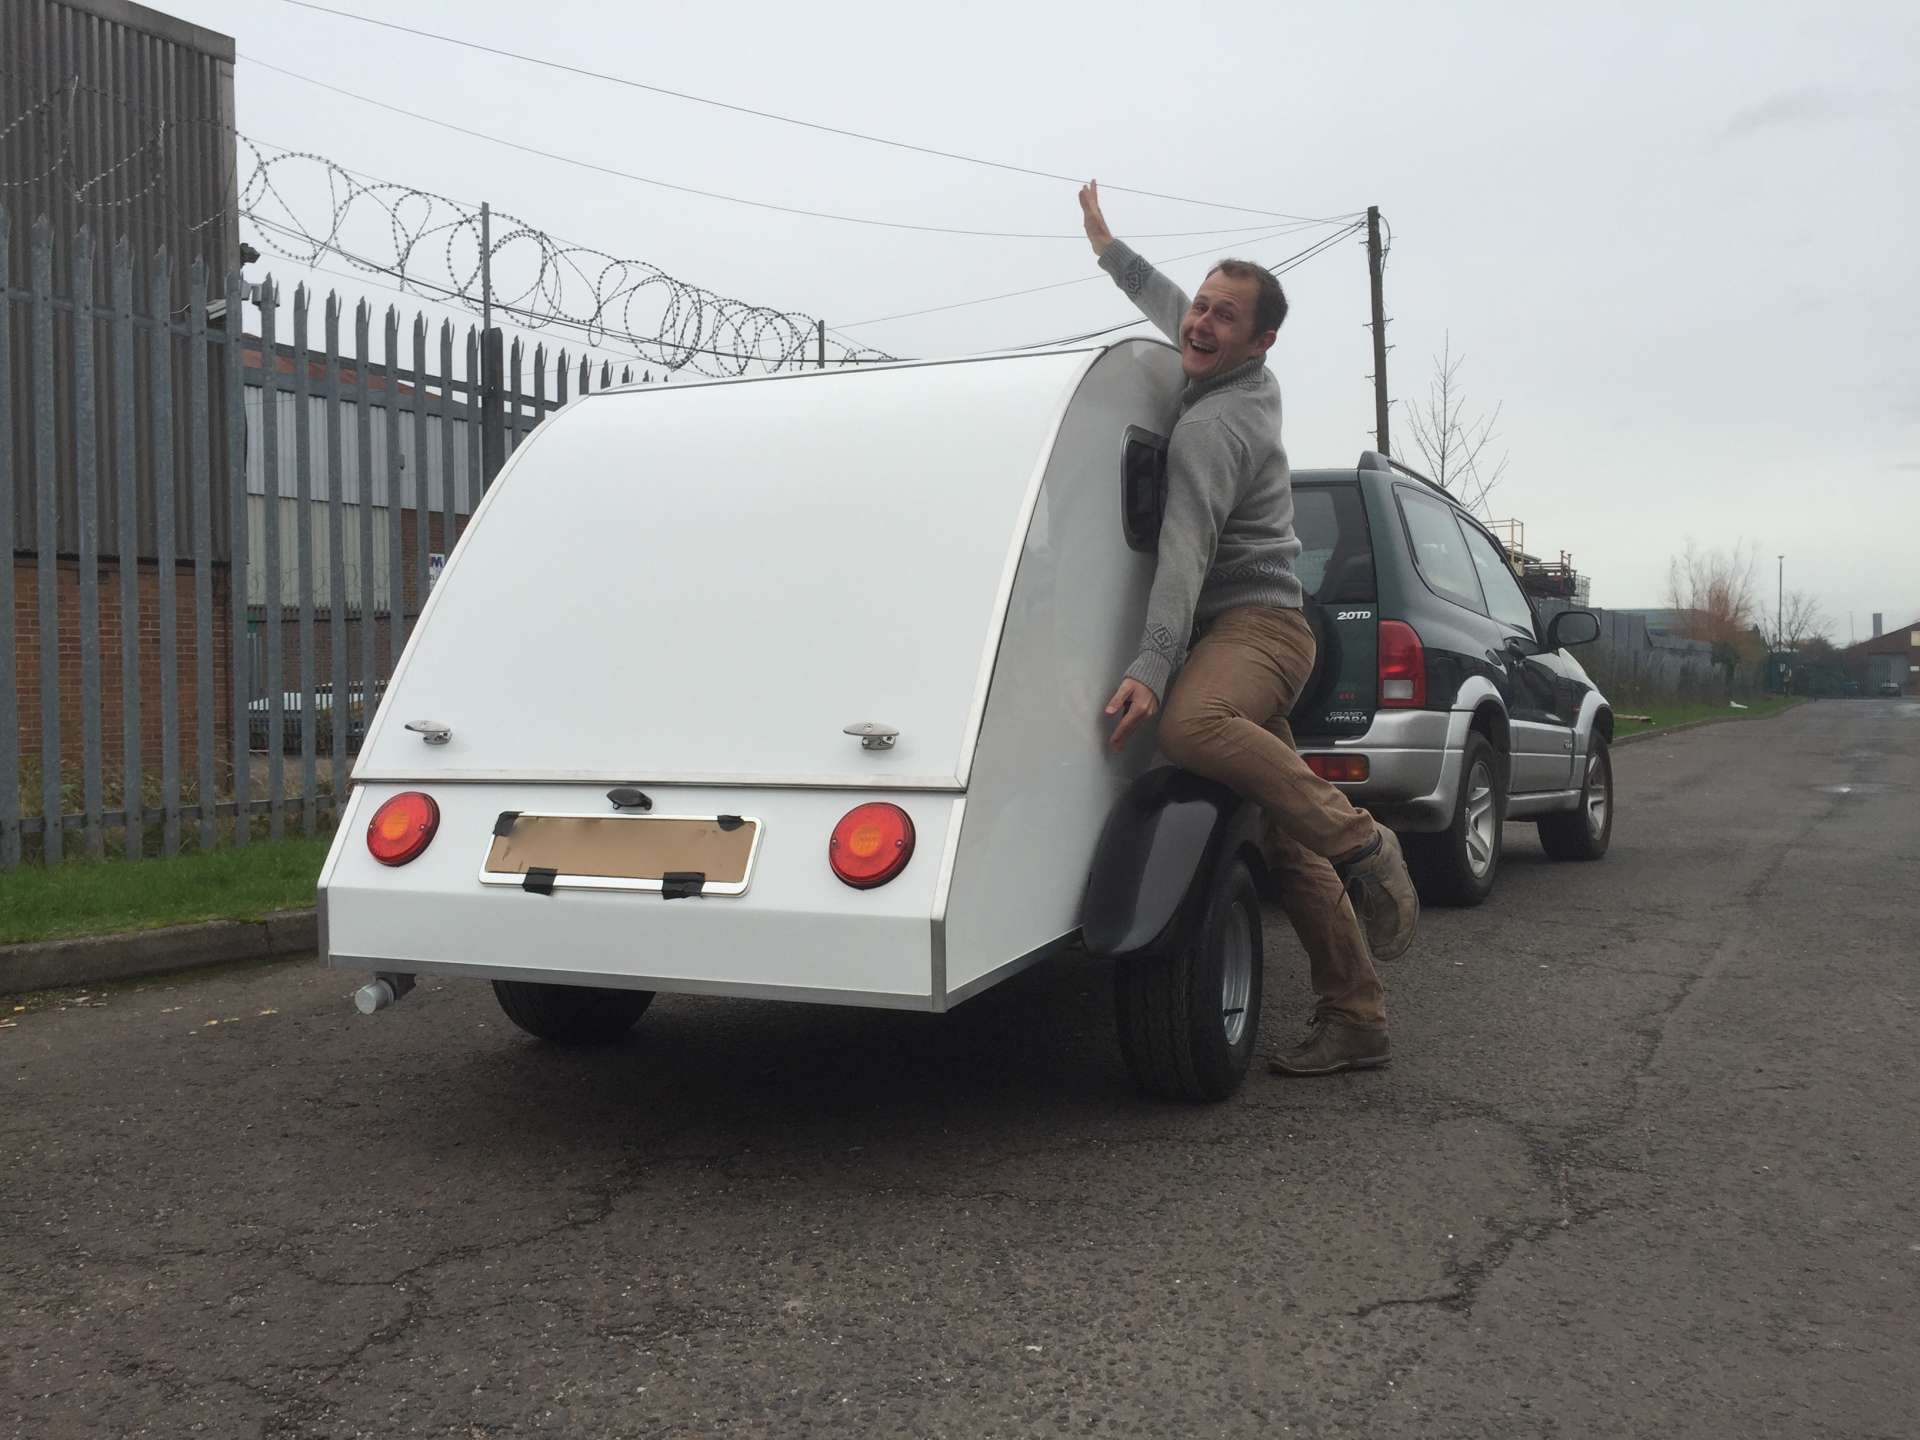 Gavin's White Teardrop Trailer